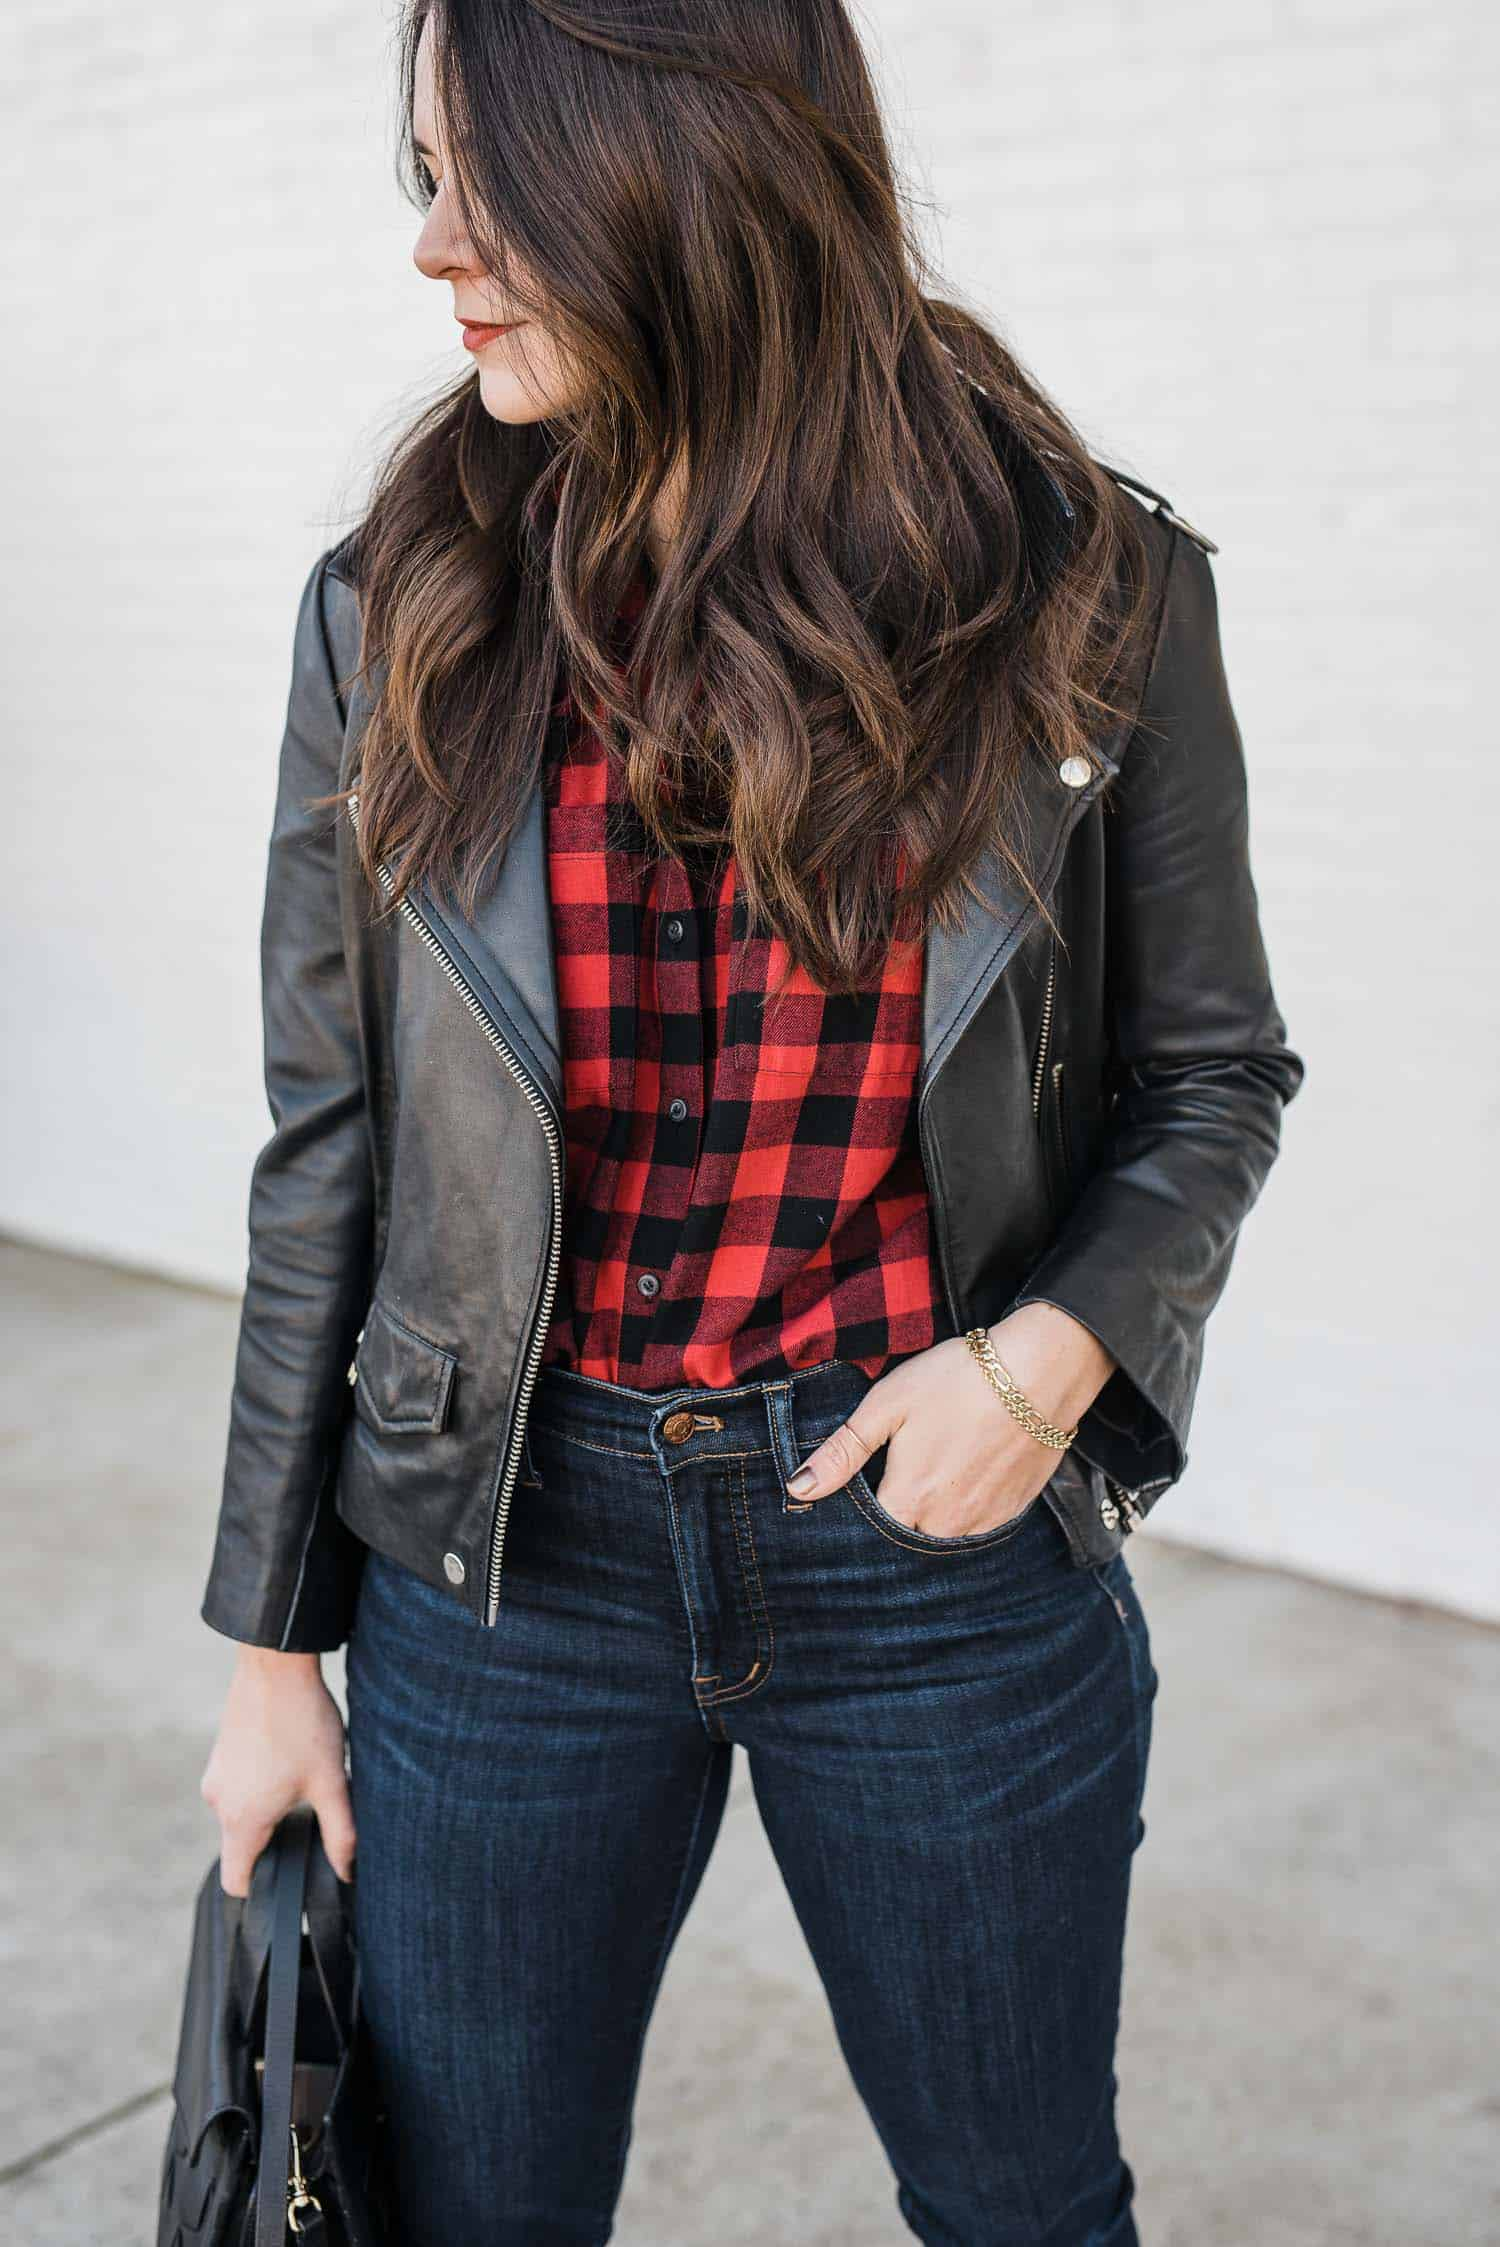 JESSICA CAMERATA OUTFIT DETAILS: MADEWELL PLAID SHIRT, LEATHER JACKET,  MADEWELL JEANS AND WELDEN BAG